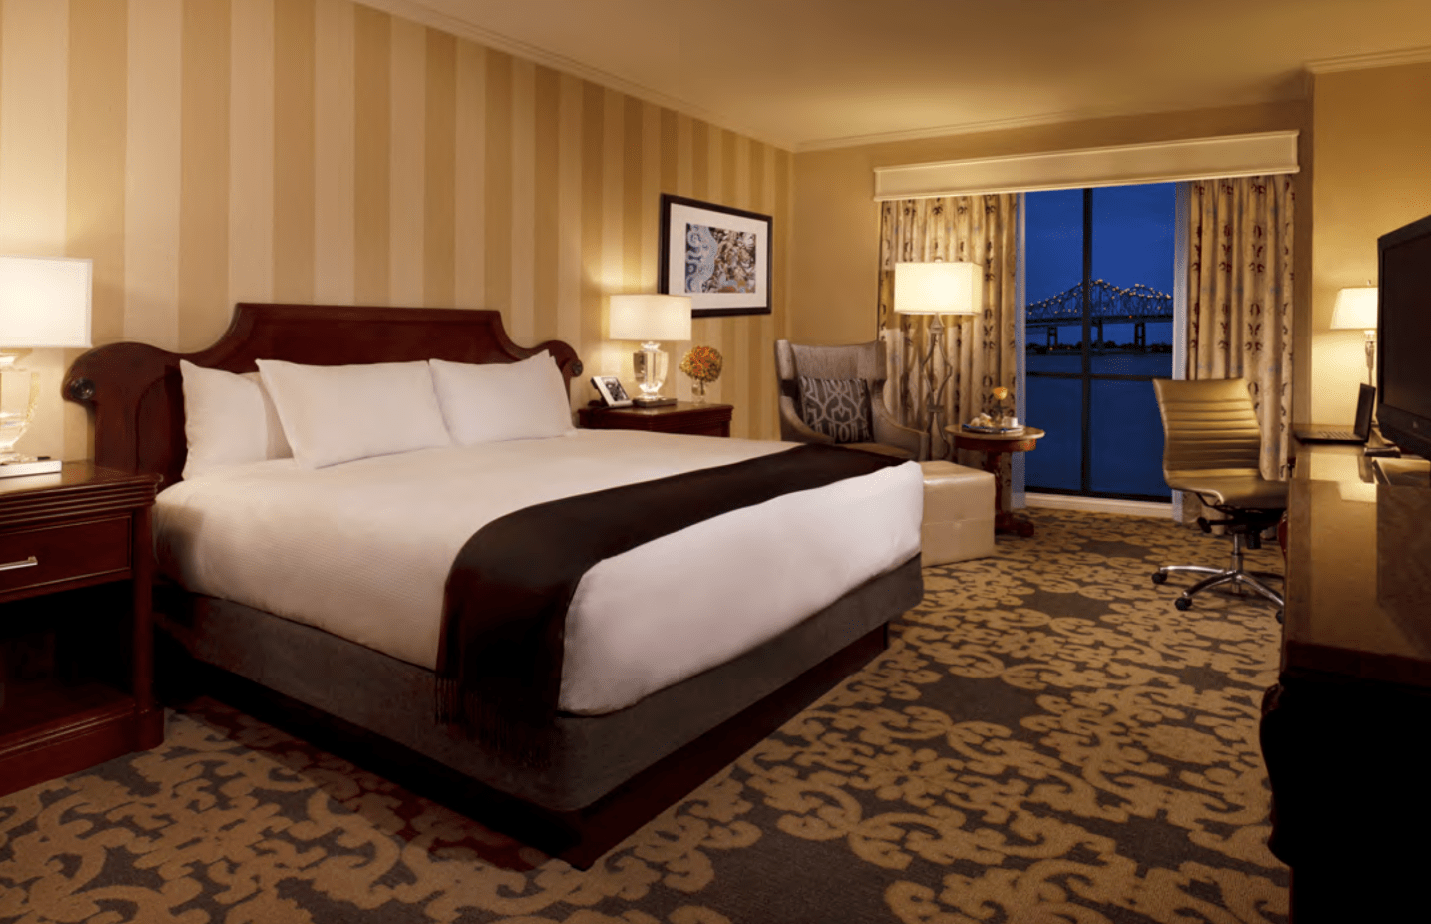 Hilton Riverside, New Orleans, Louisiana